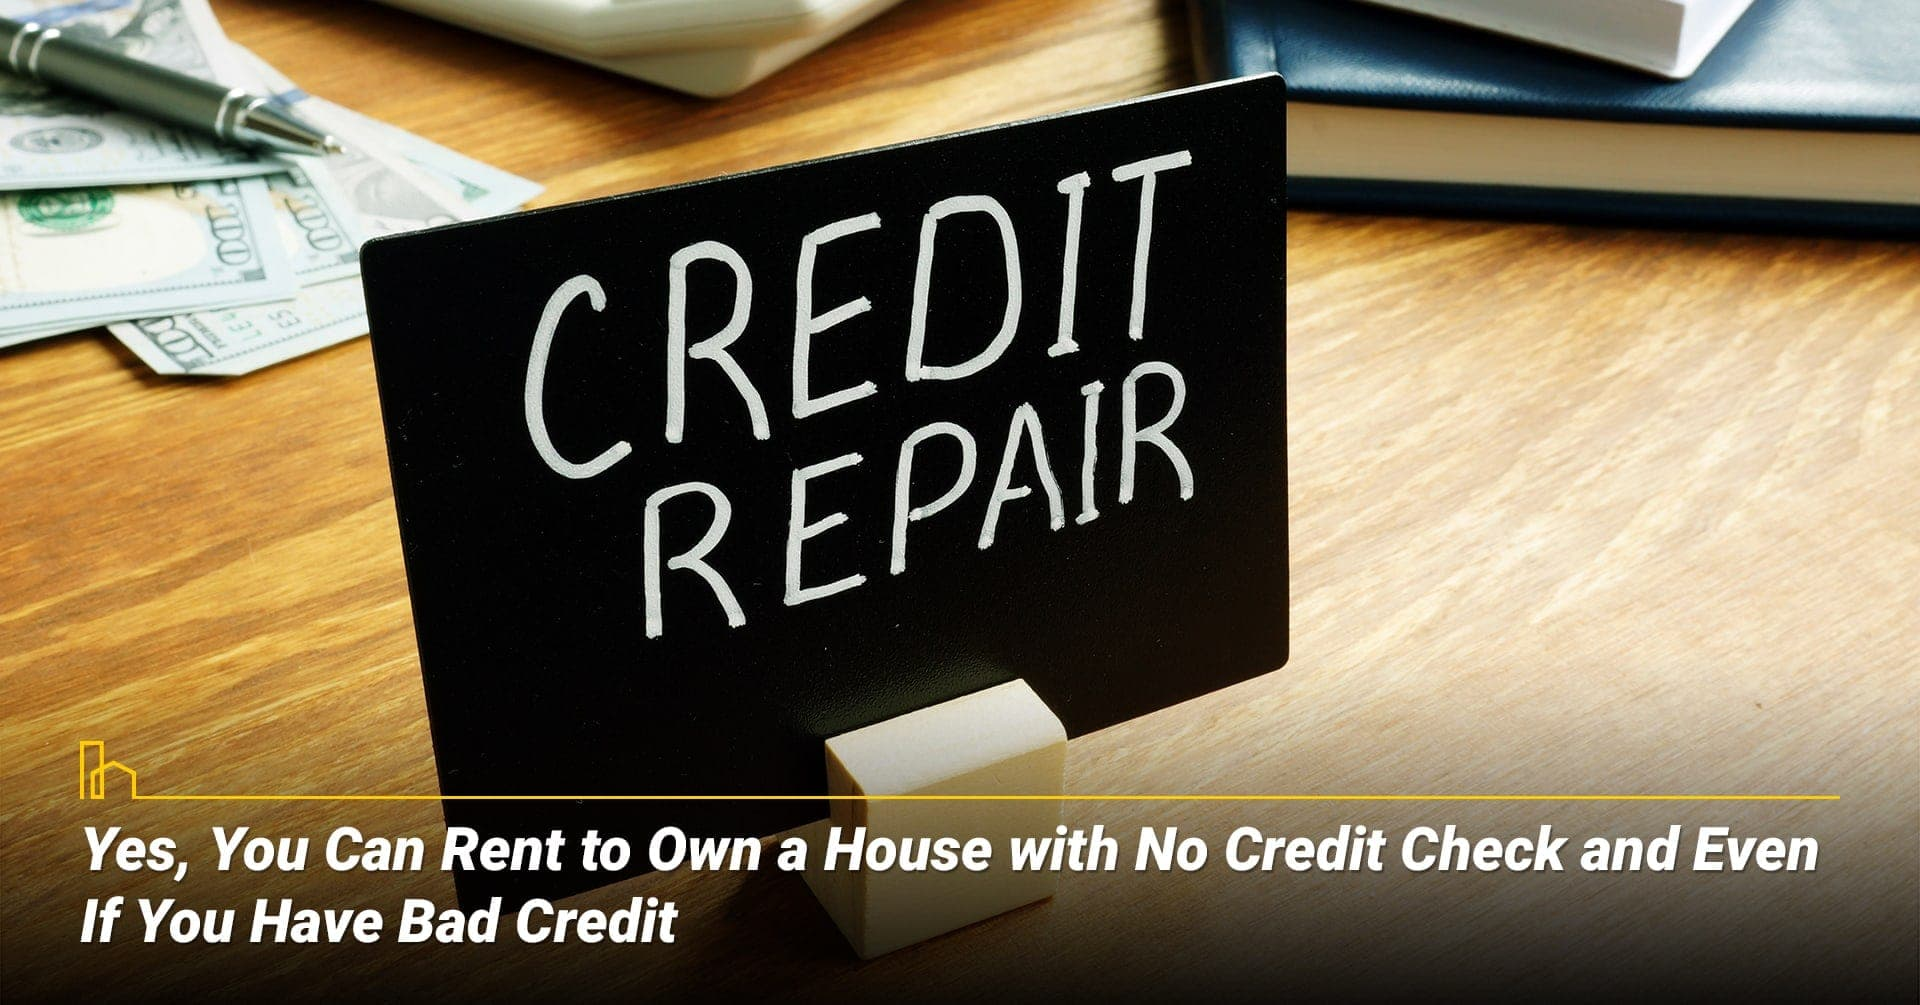 Yes, You Can Rent to Own a House with No Credit Check and Even If You Have Bad Credit, regardless of credit score you can rent to own a home